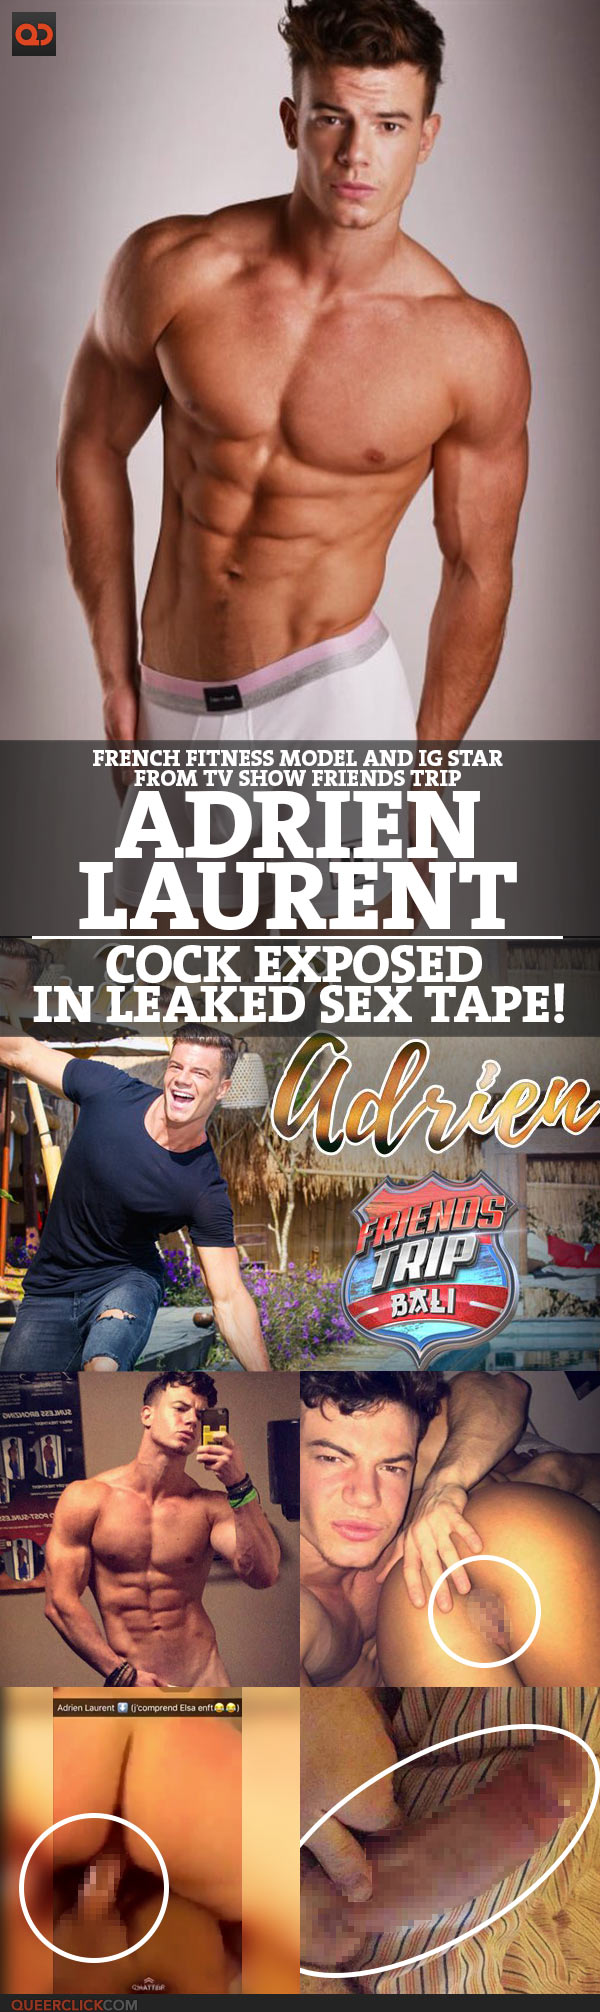 Adrien Laurent, French Fitness Model And IG Star From TV Show Friends Trip, Cock Exposed In Leaked Sex Tape!